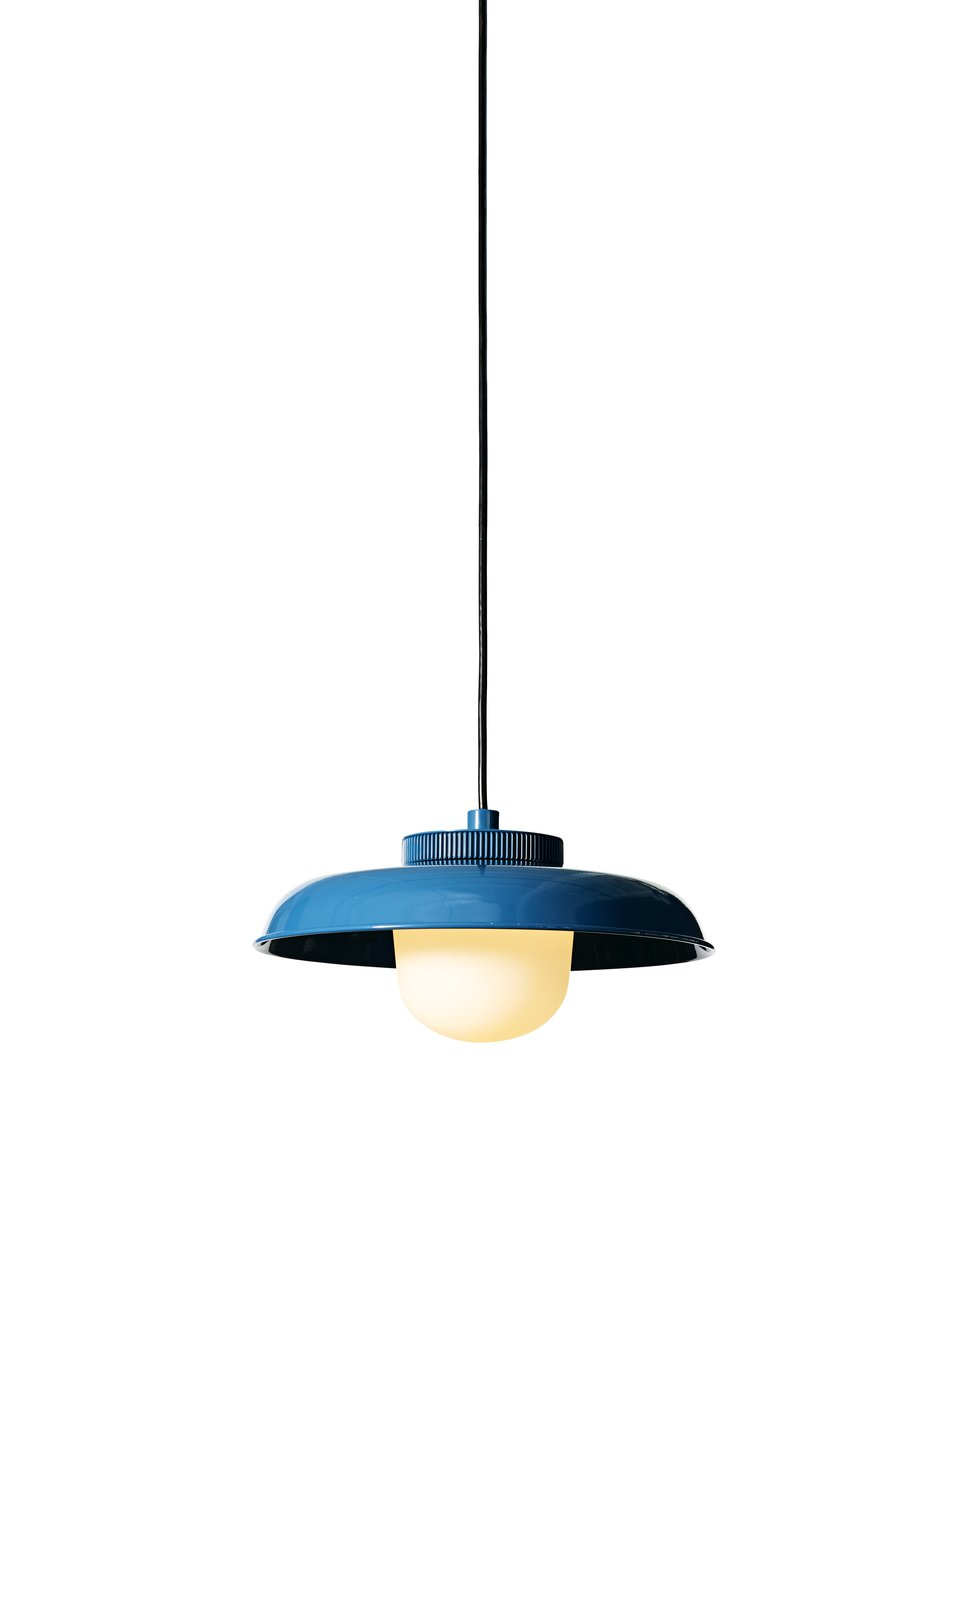 With a 16-foot-long swagged cord, the Hoist pendant (from $590, with steel shade) can hang from a covered area and reach faraway outlets with ease. Meyer Davis created the light for fellow New Yorkers Rich Brilliant Willing.  Photo 8 of 24 in 24 Outdoor Products for Every Kind of Summer Plan